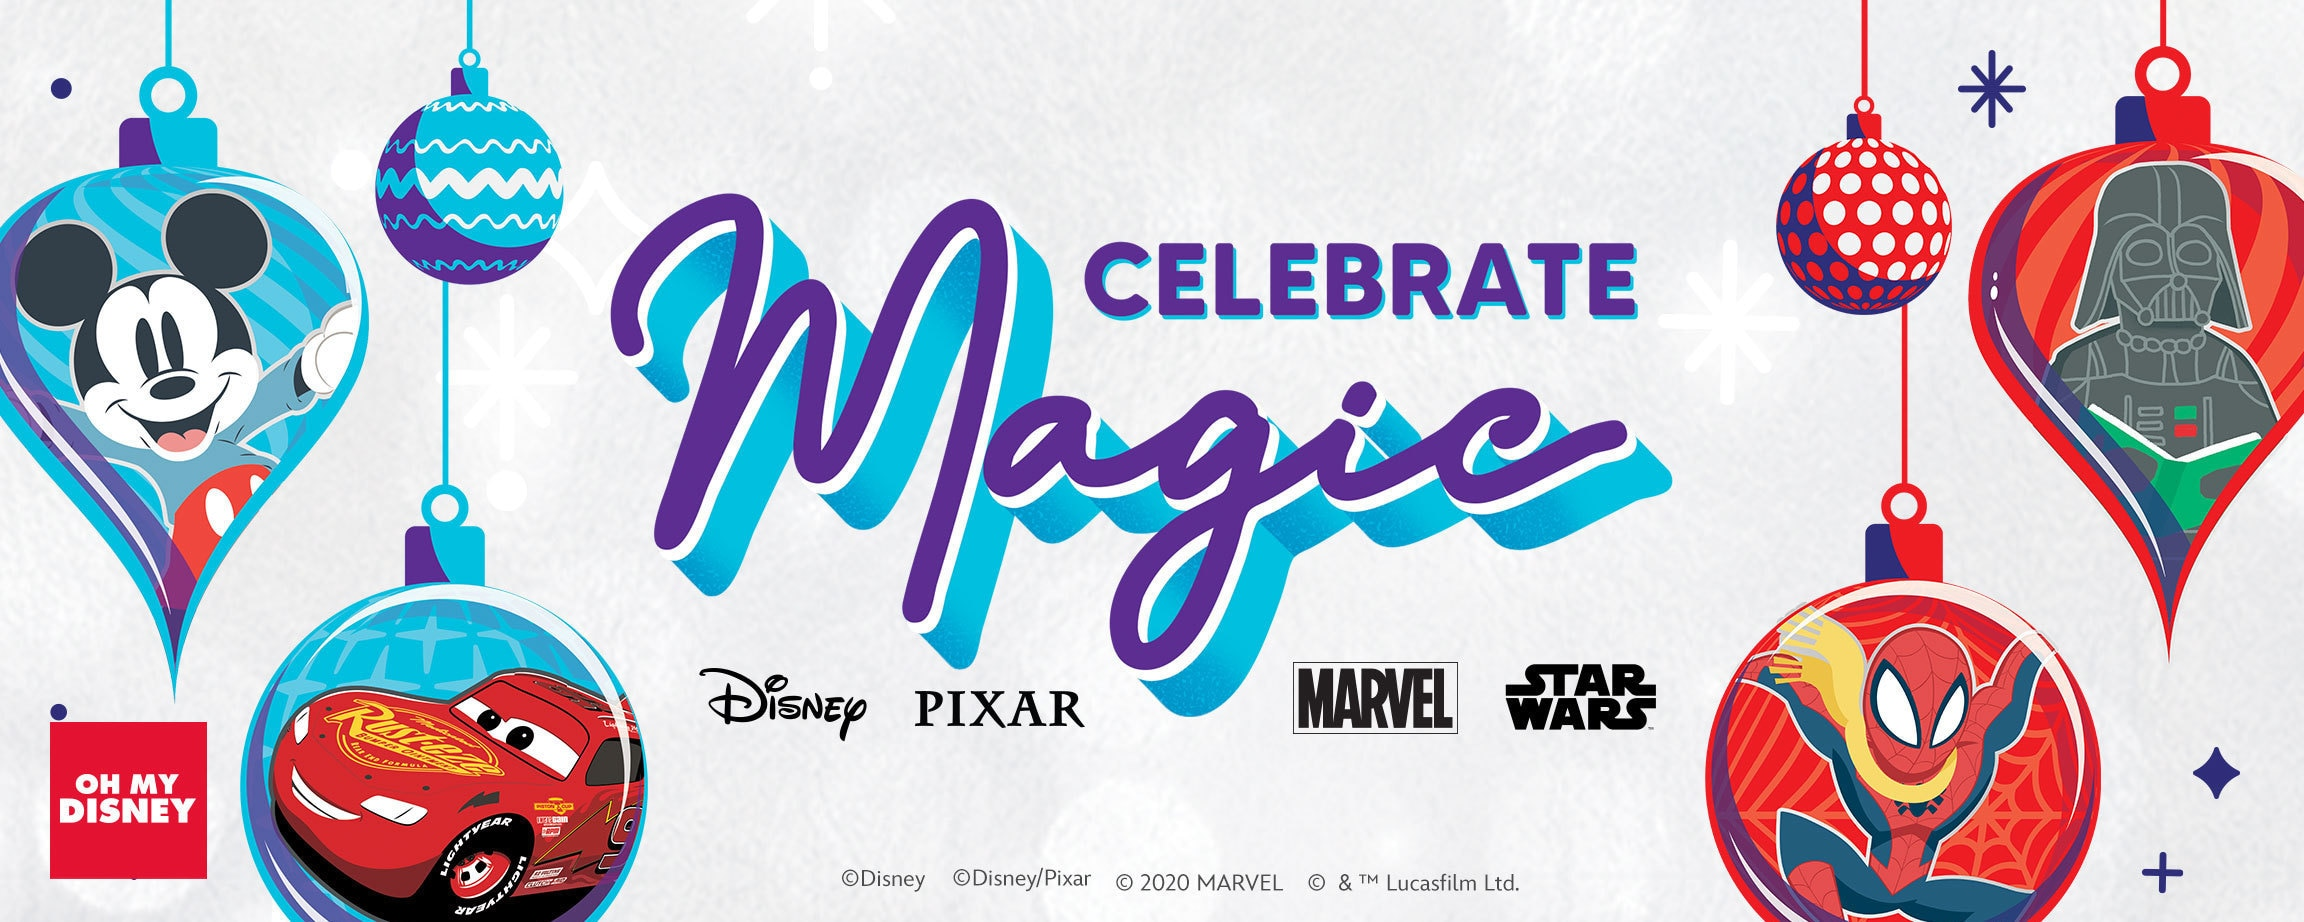 Disney's Celebrate Magic